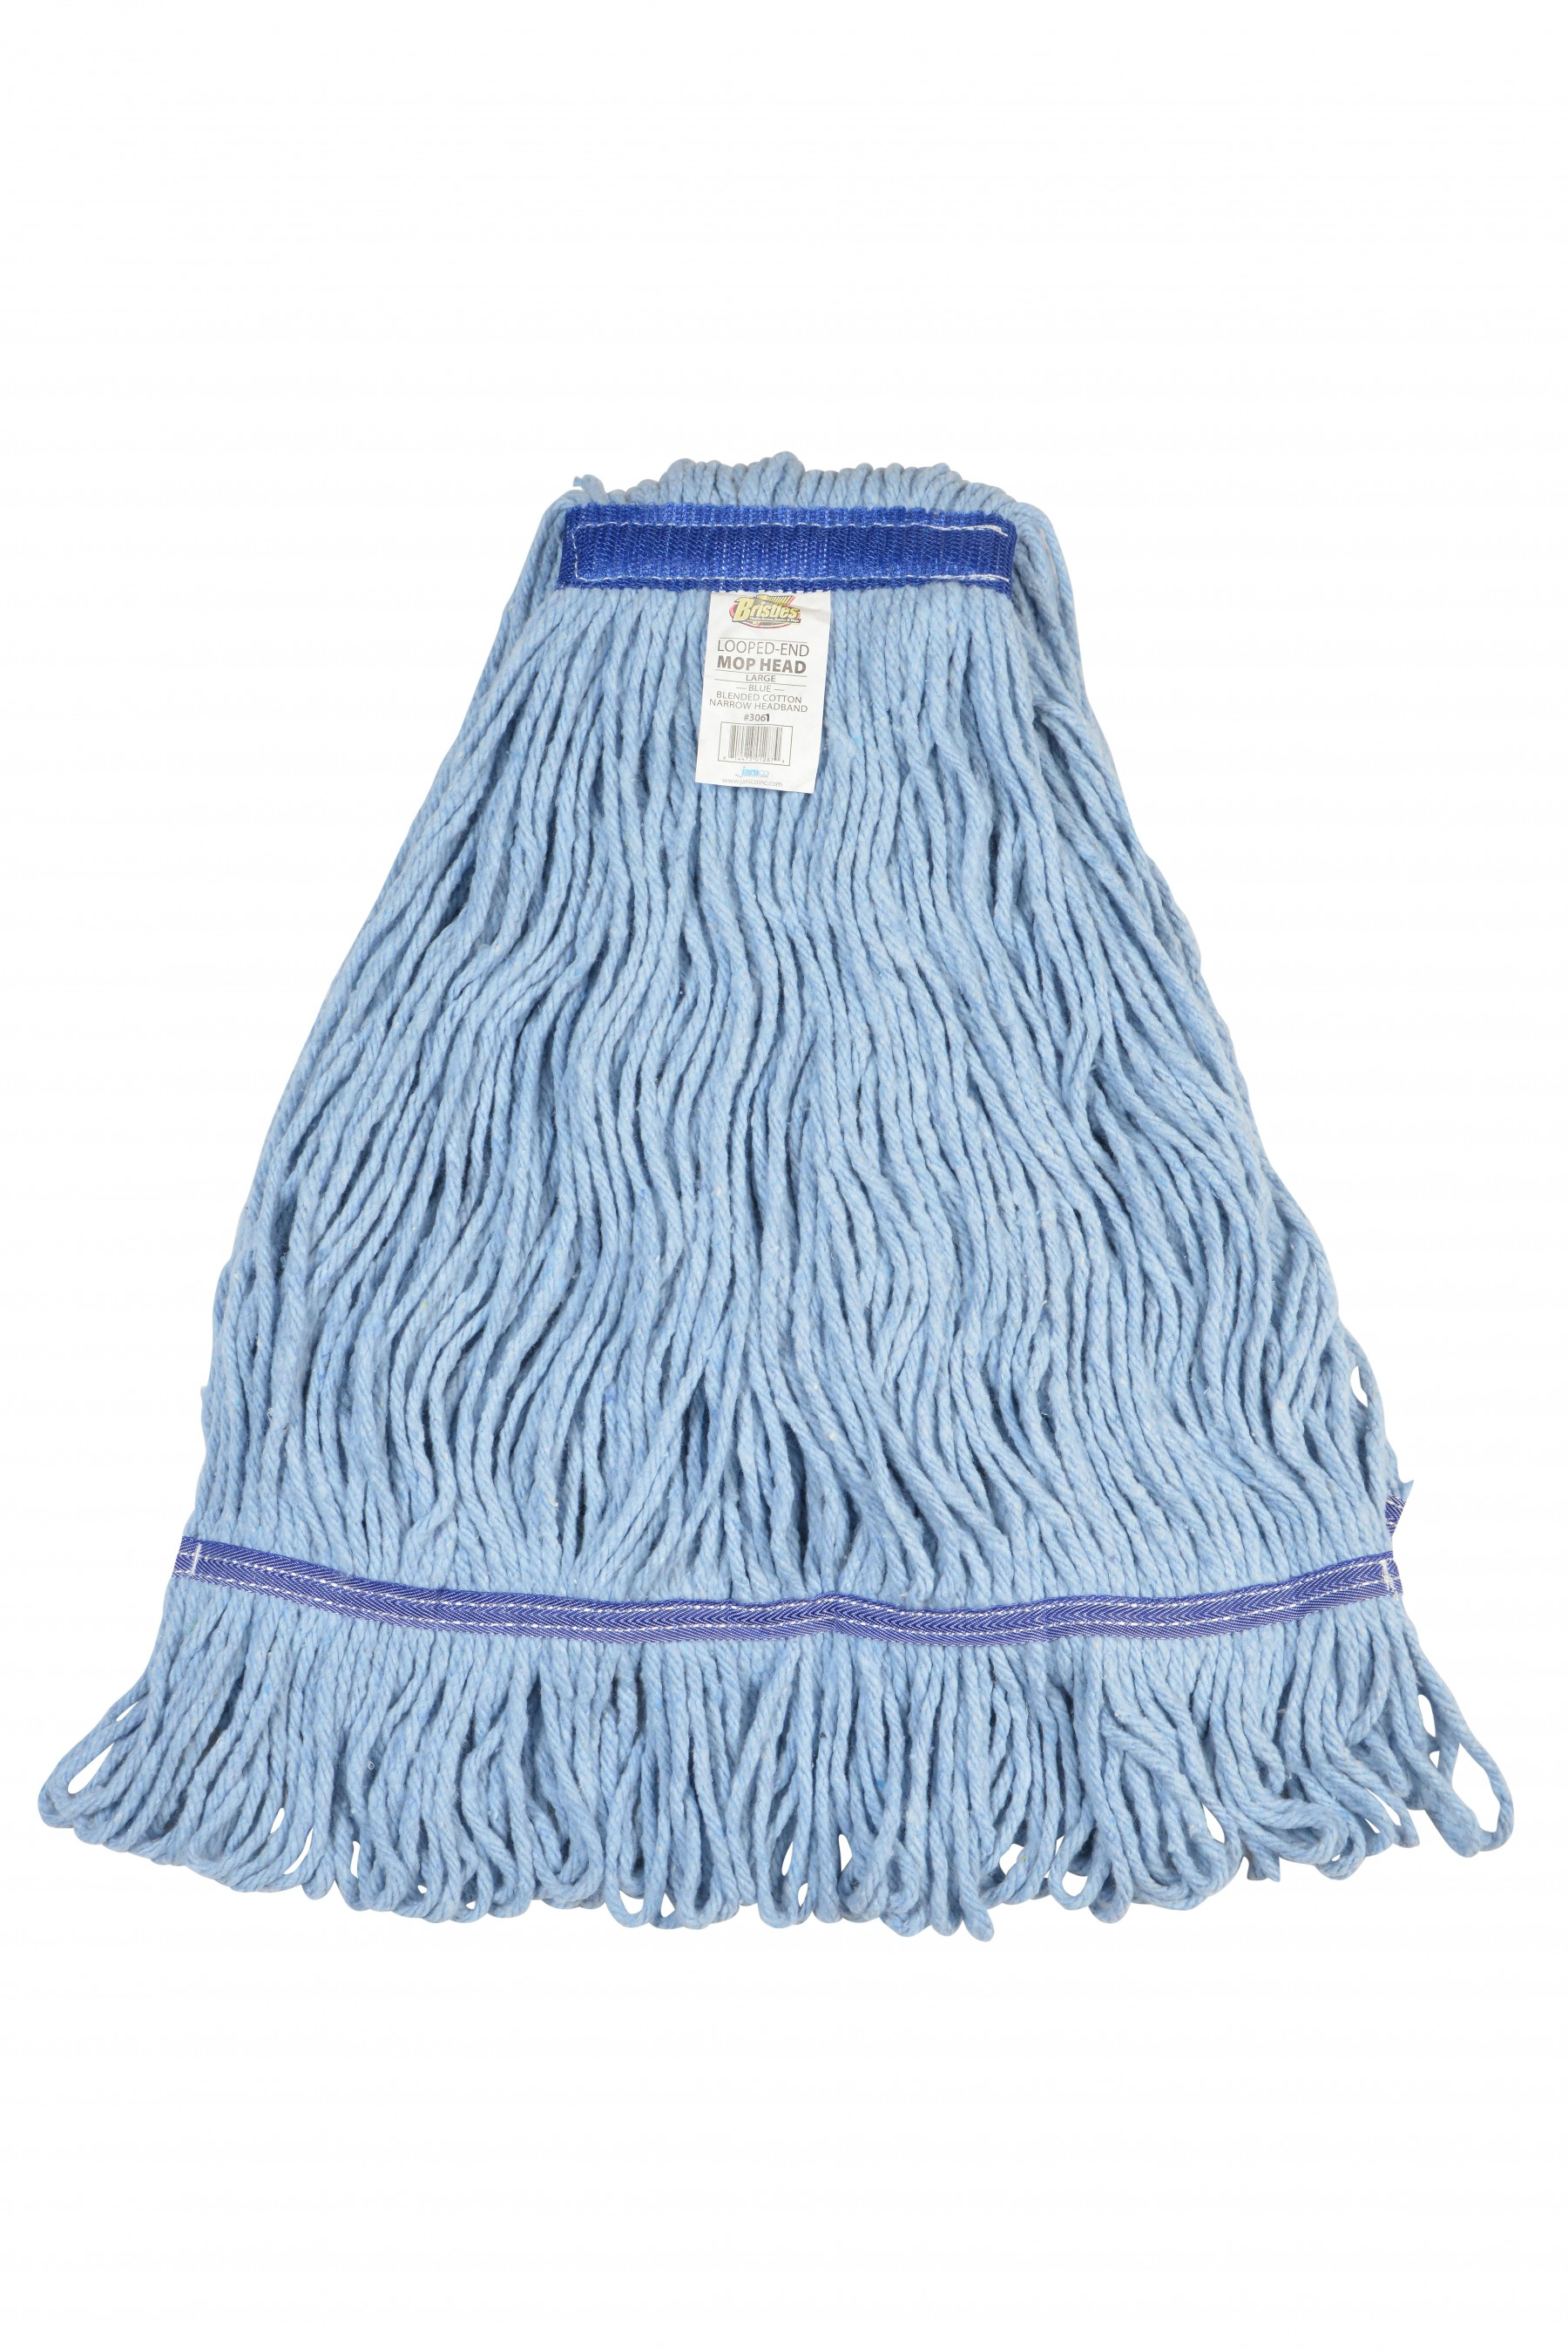 Blue Looped End Mop Head -  Medium (12/cs)